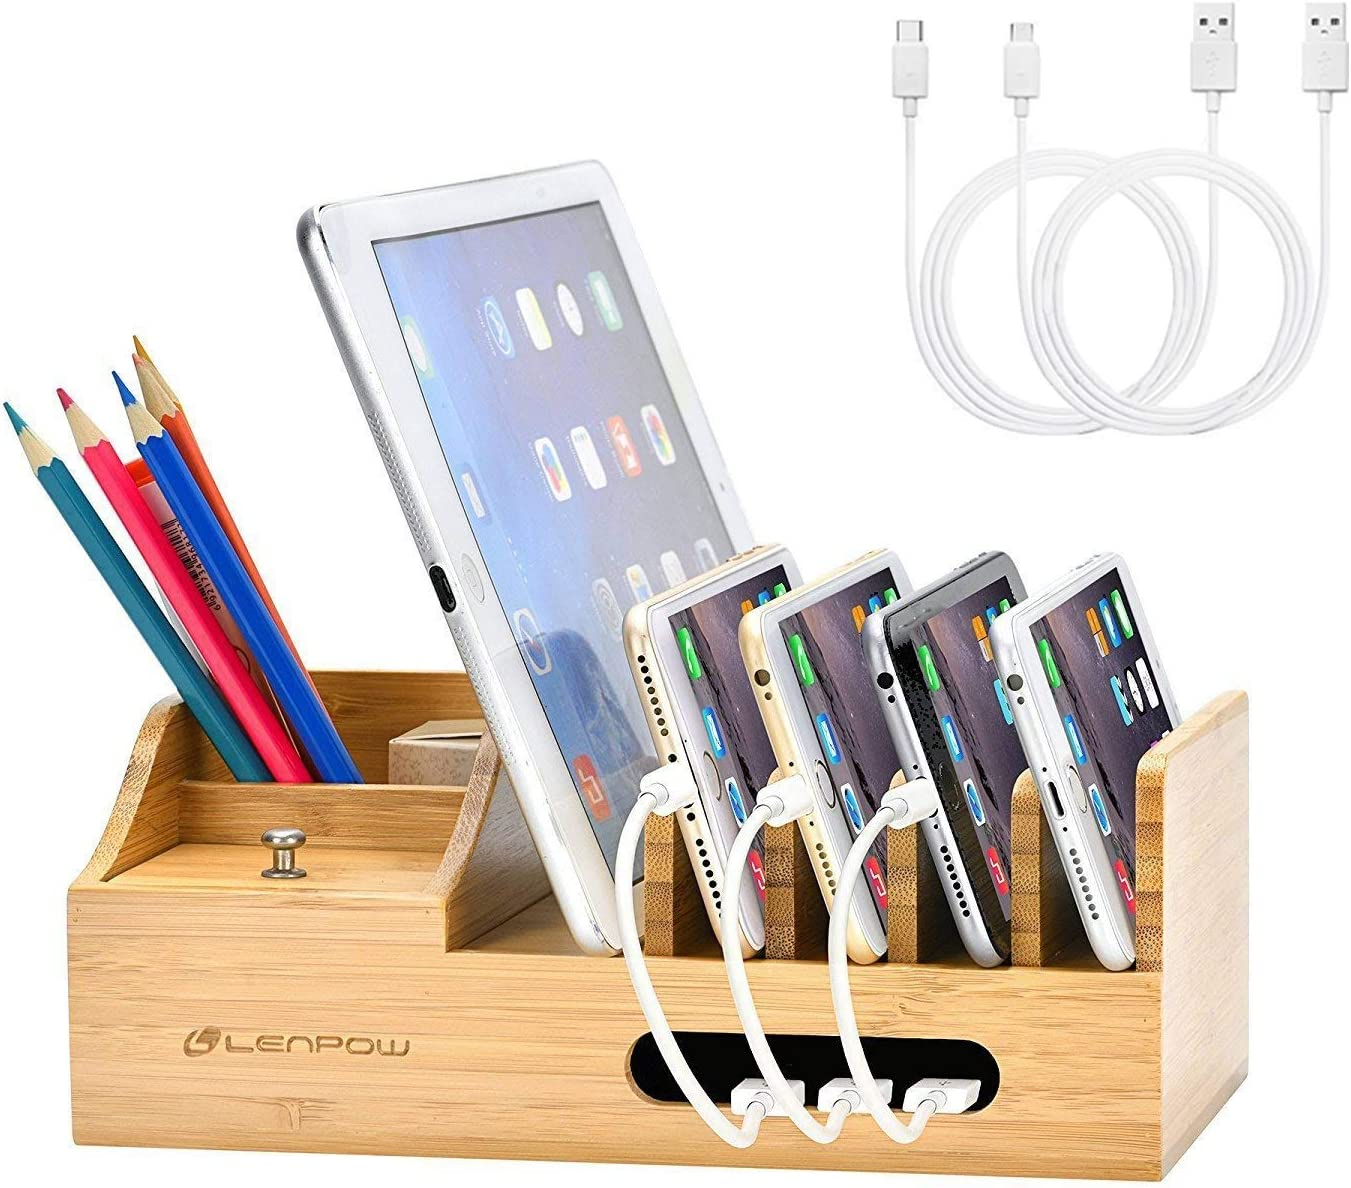 LENPOW Bamboo Charging Station Dock Desktop Docking Station Multi Devices Cords Cable Organizer for iPhone11 Pro Max XS XR X Max Samsung S10+ Google Pixel LG iPad, Charger Not Included